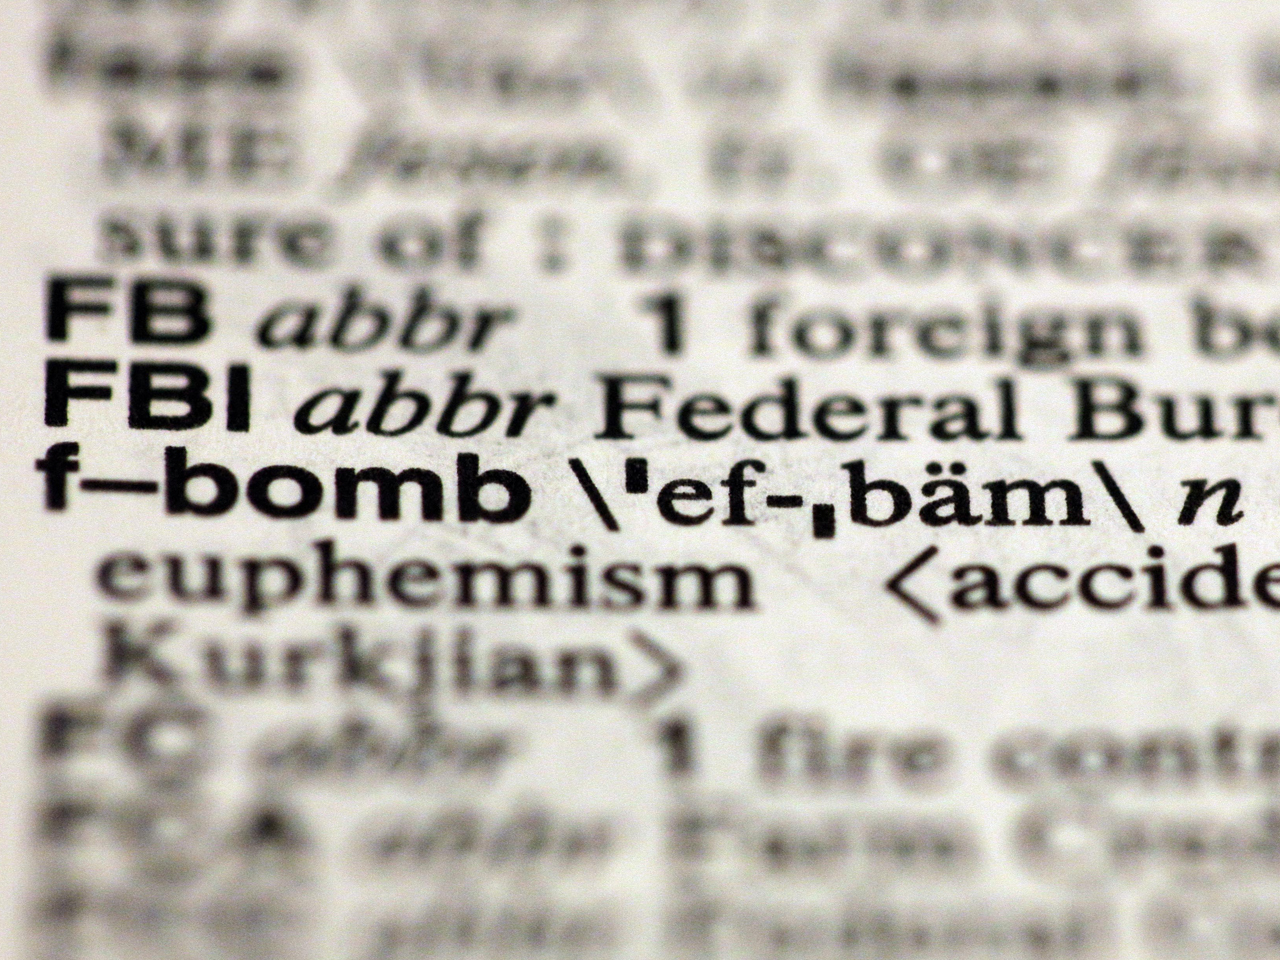 F-Bomb added to Merriam-Webster dictionary along with sexting